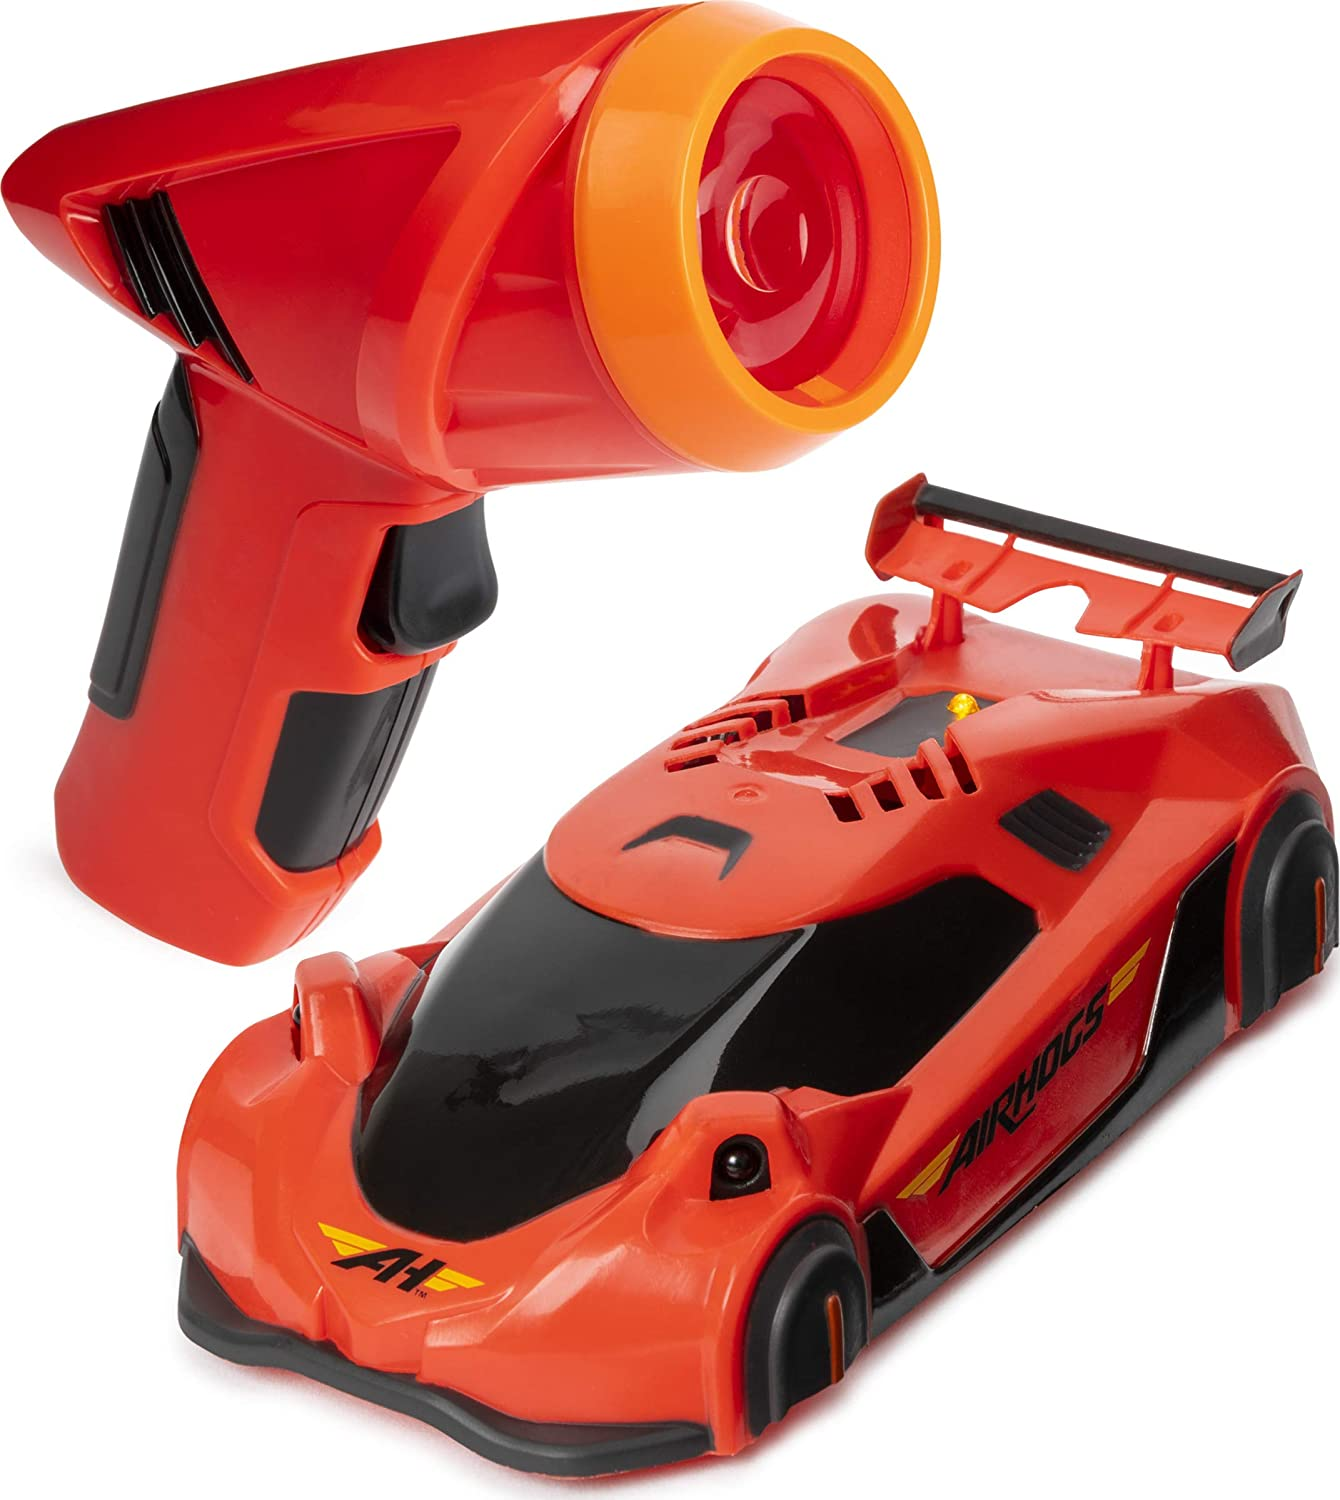 Image of a toy laser gun with toy car in red colors.